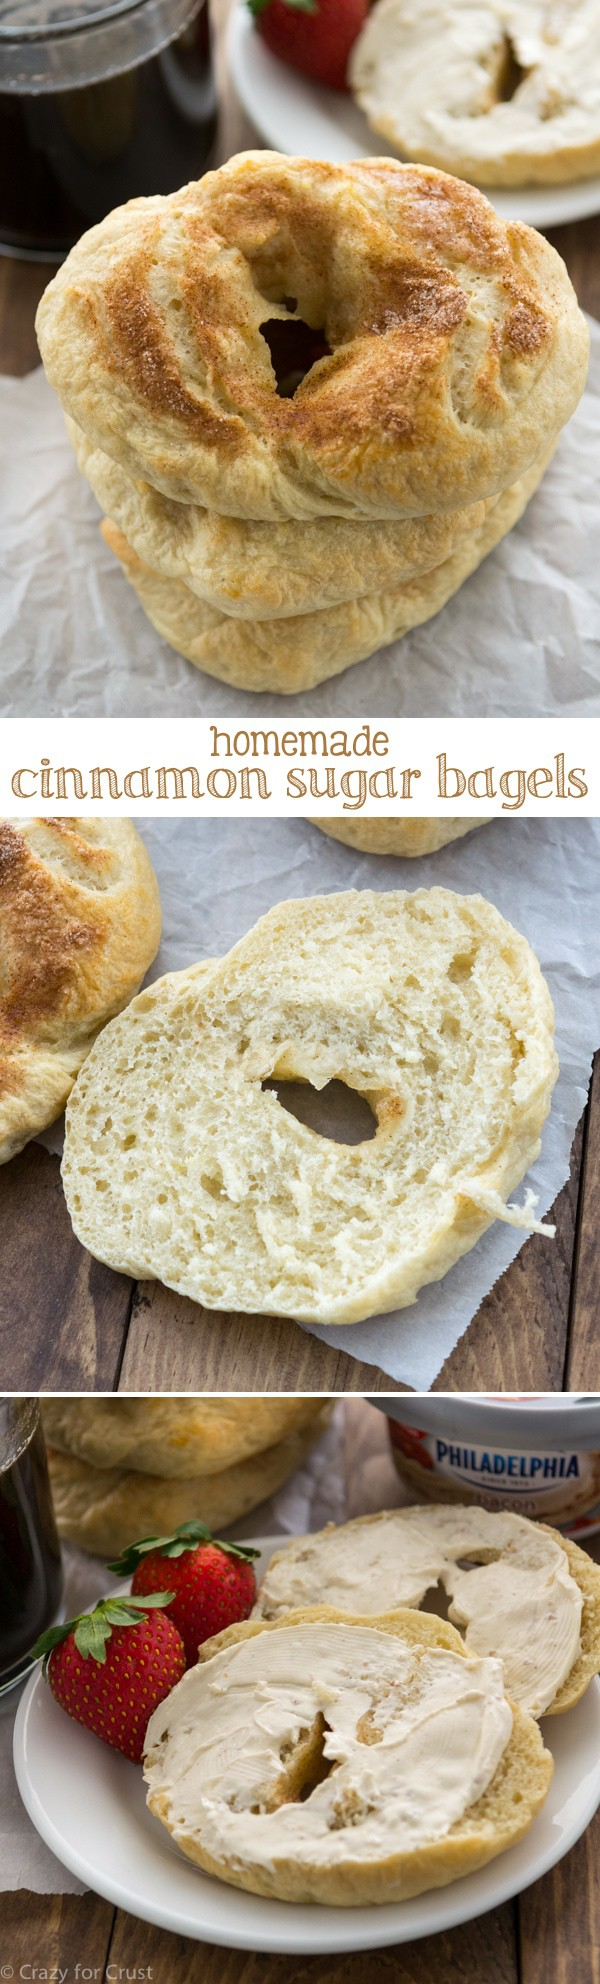 Cinnamon Sugar Bagels